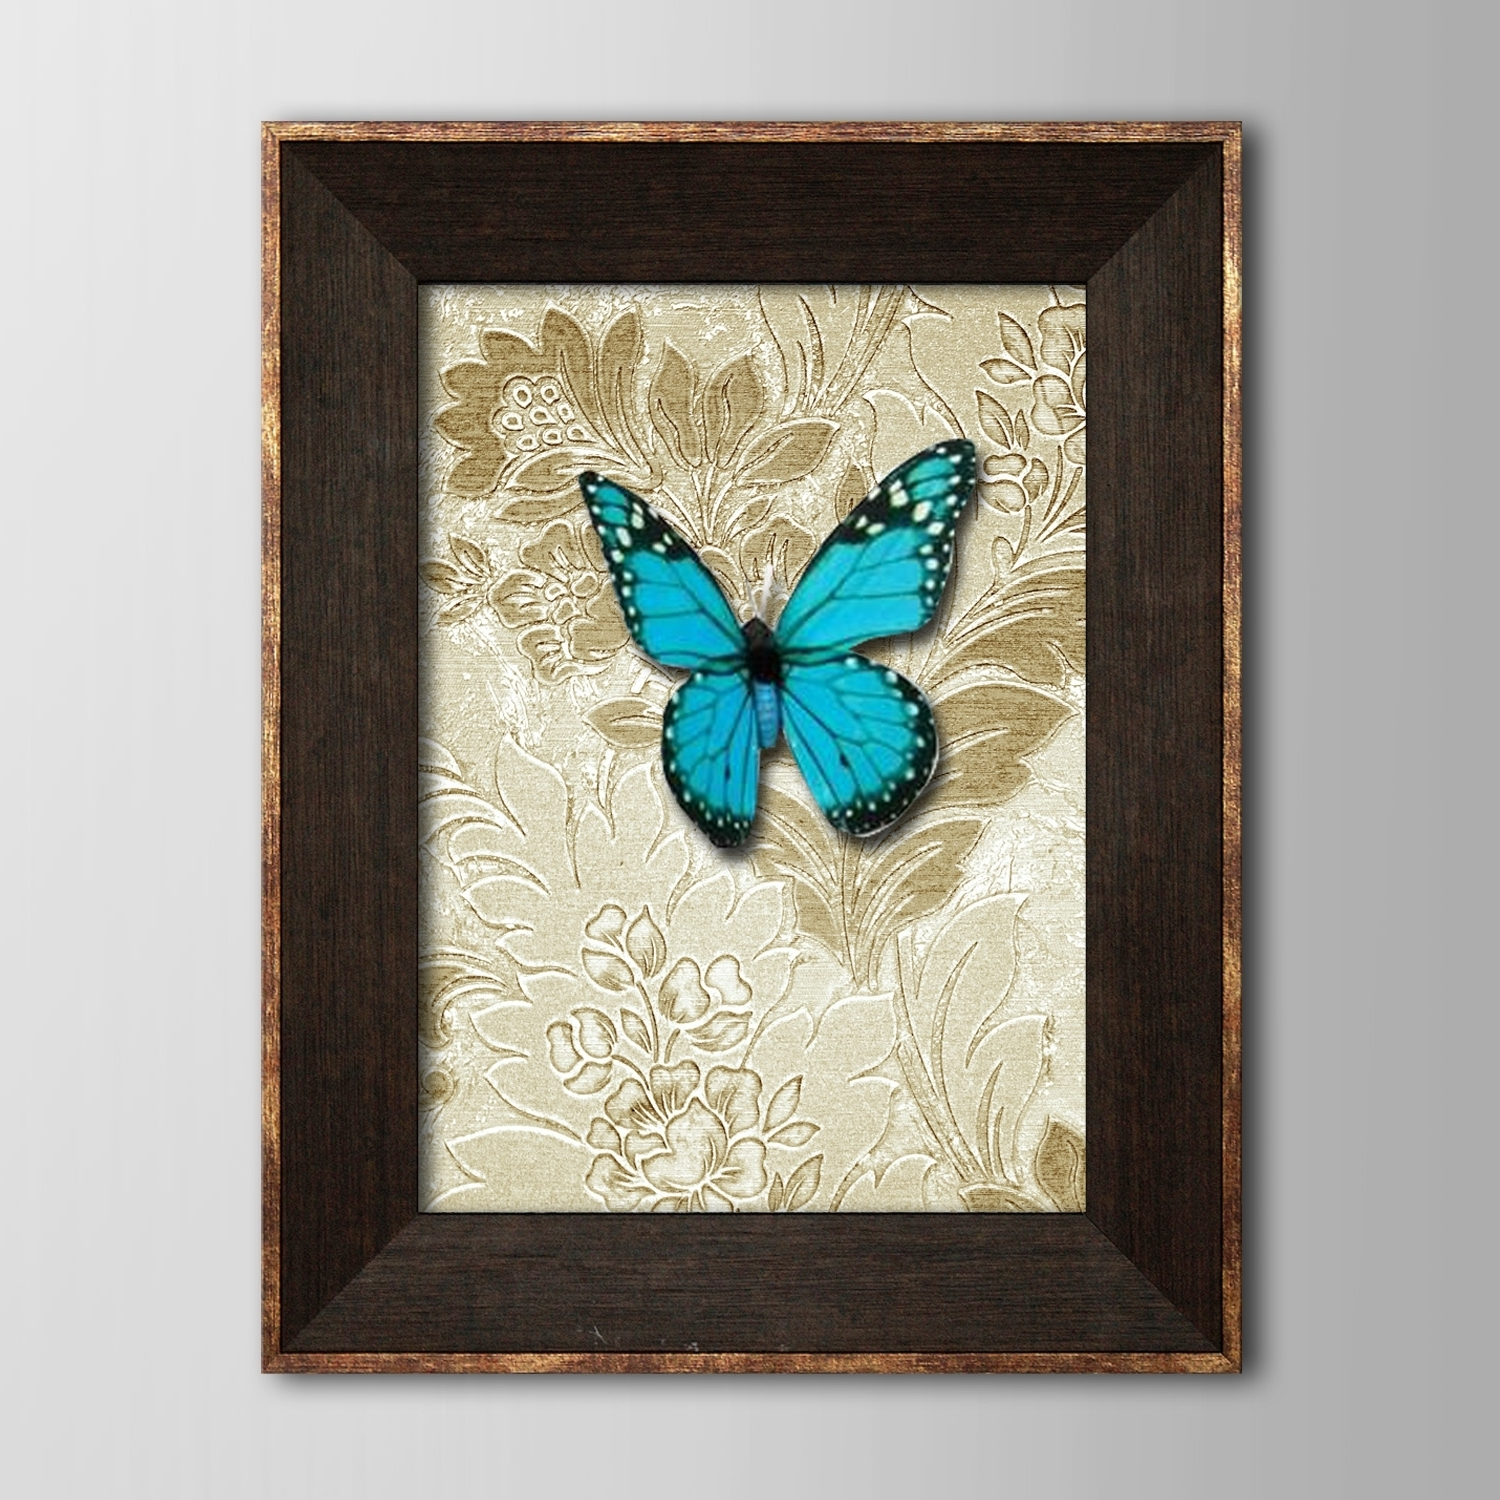 Recent 3D Butterfly Framed Wall Art Within Framed 3D Art Wall Art, Animal 3D Blue Butterflies, Wall Decor (Gallery 5 of 15)